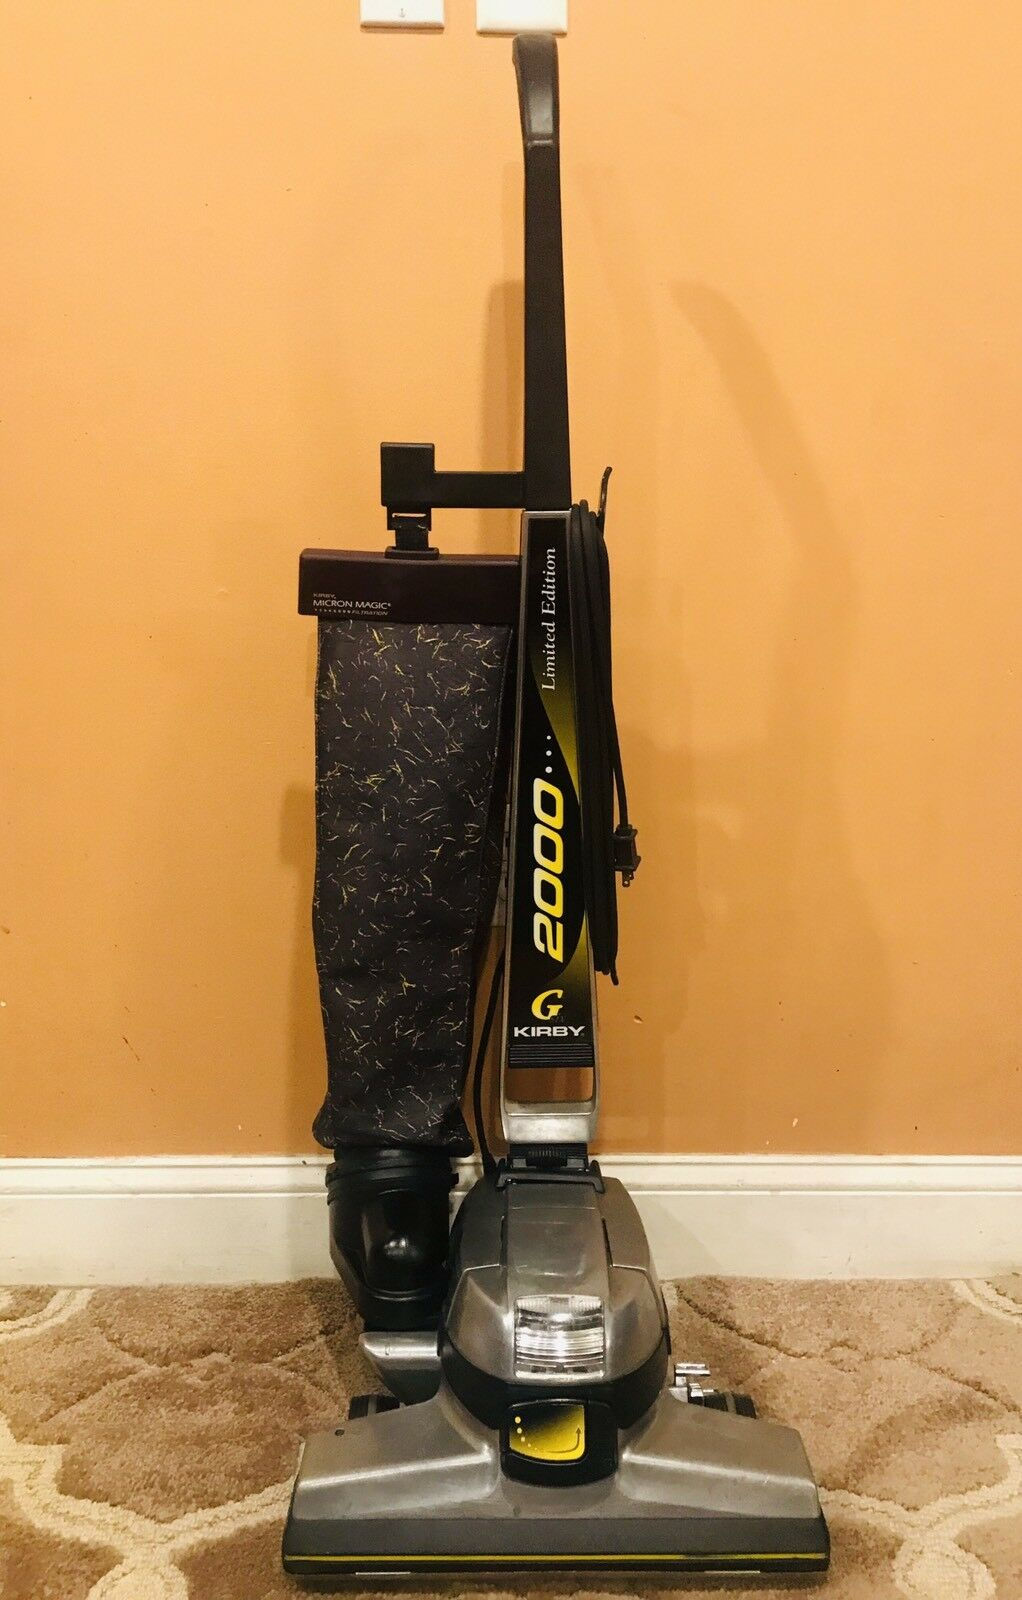 Kirby G6 Limited Edition Bagged Upright Vacuum Cleaner